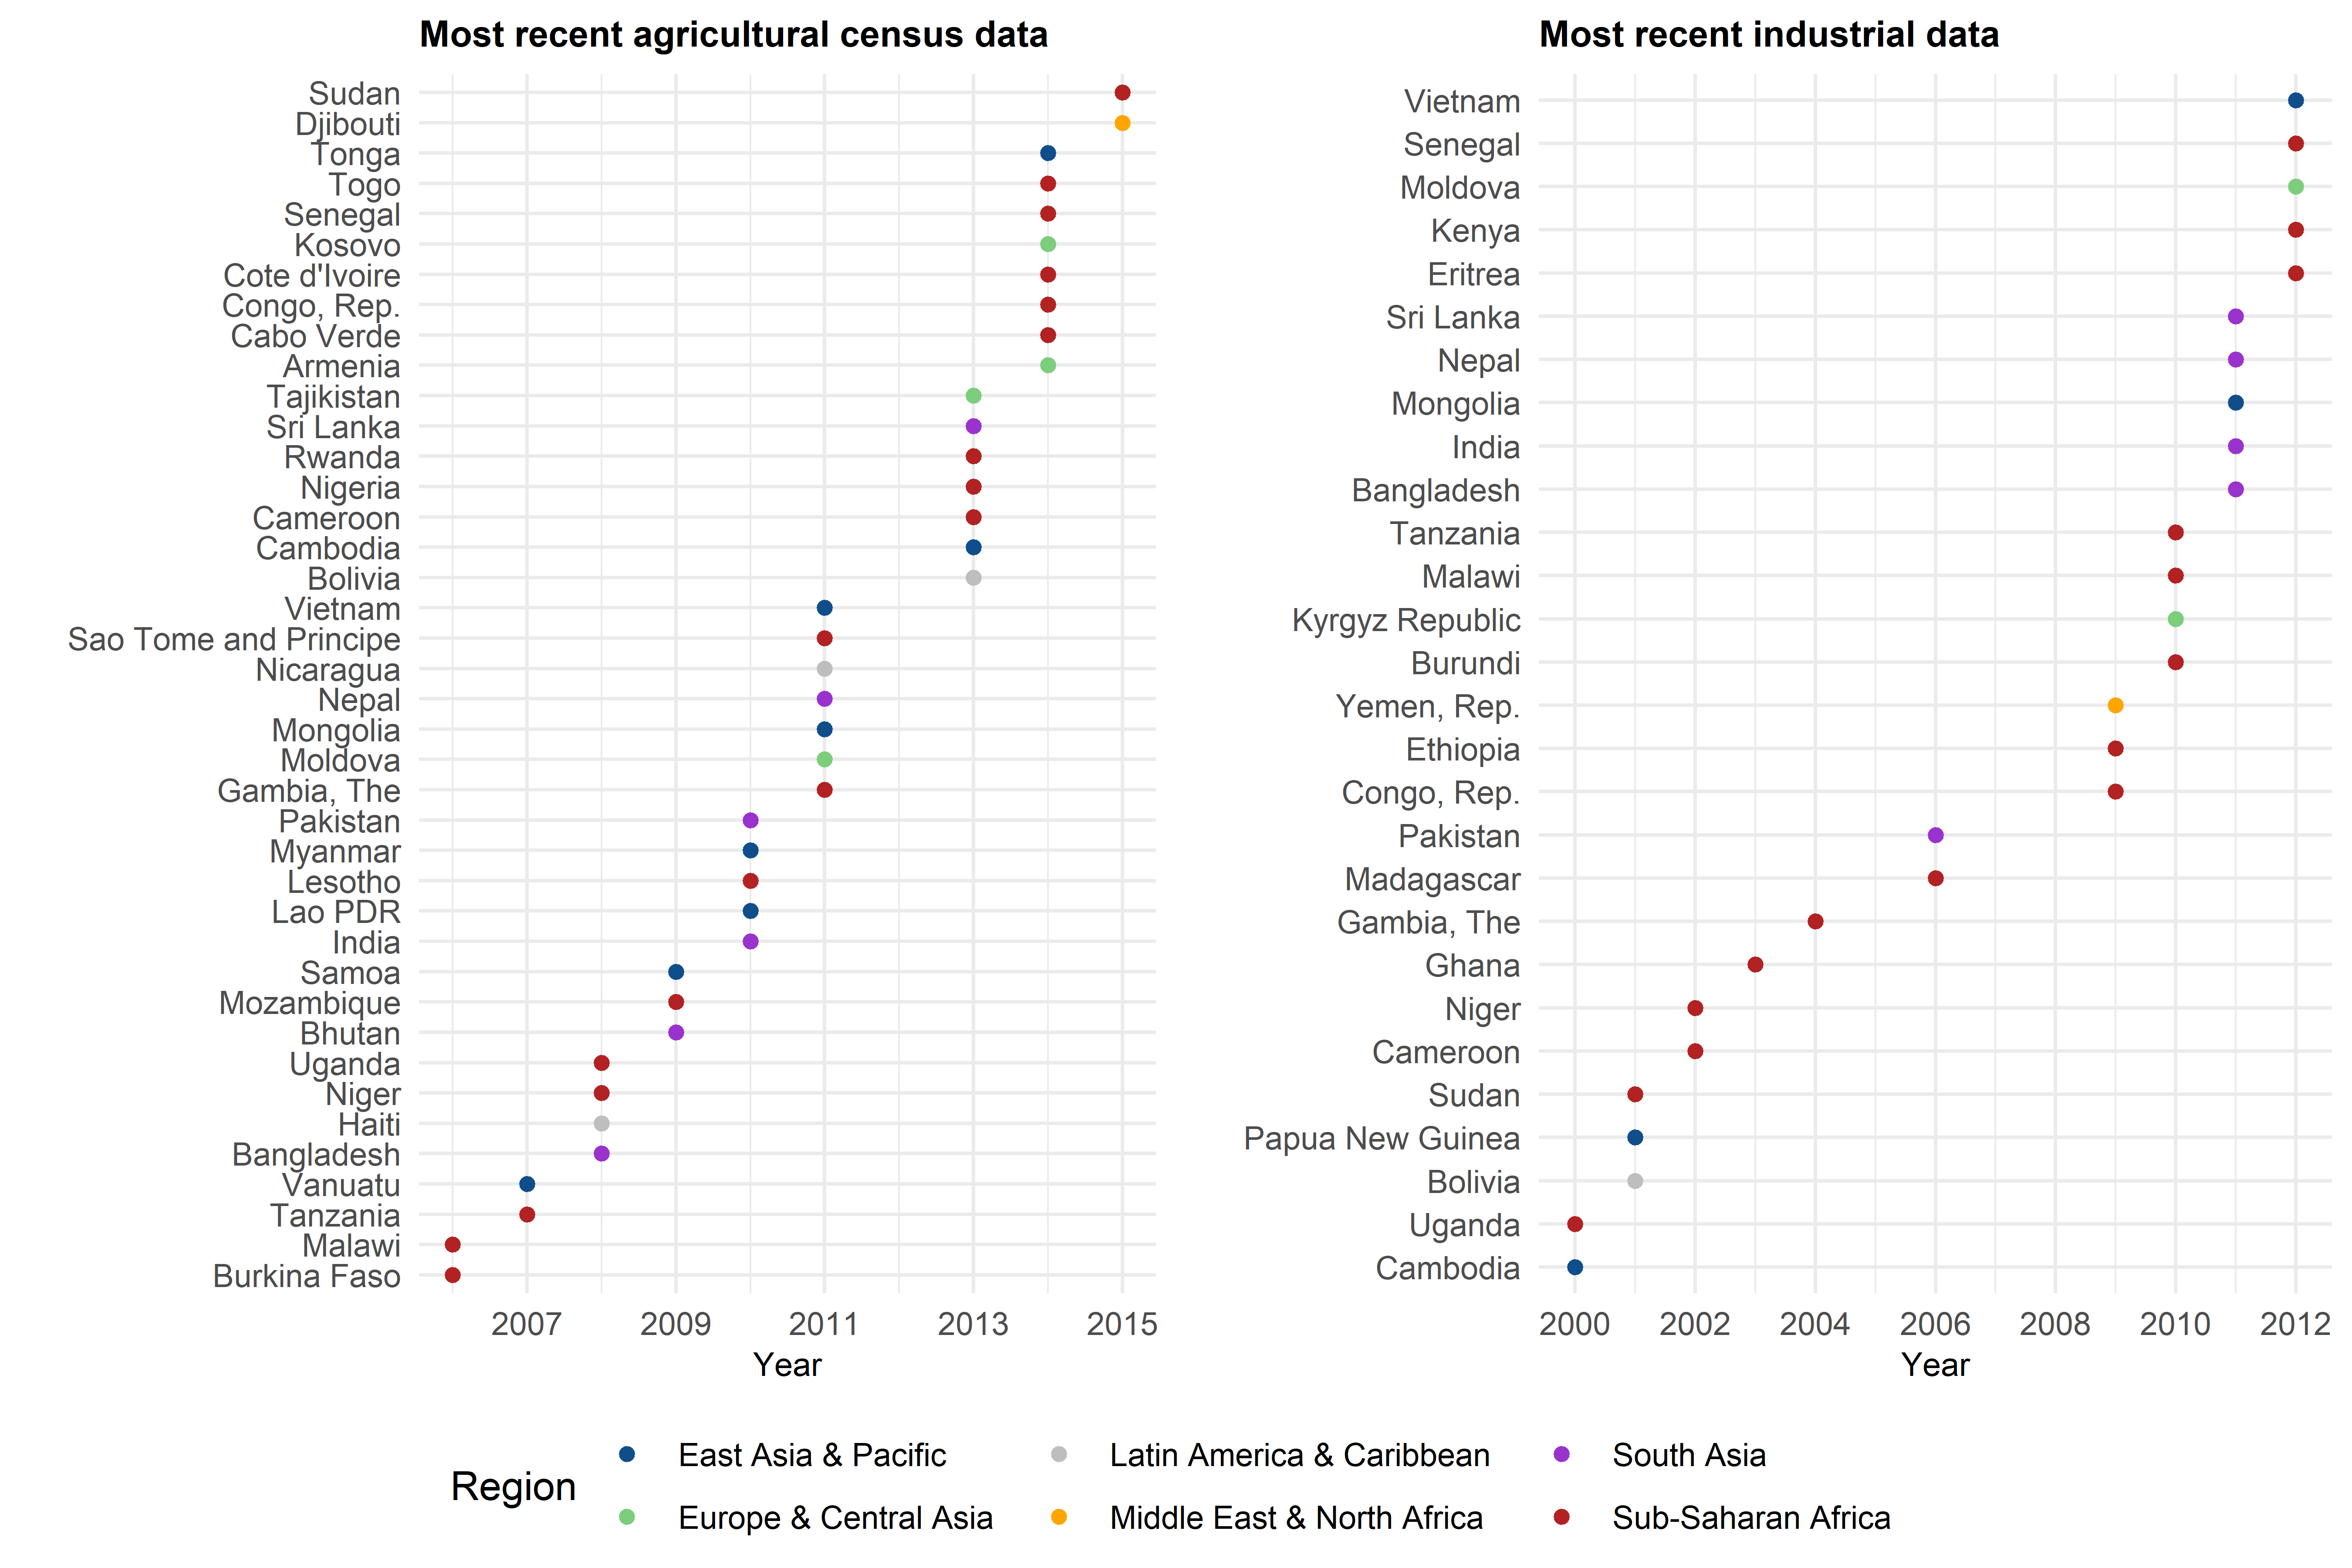 Two charts showing agricultural census data and industrial data